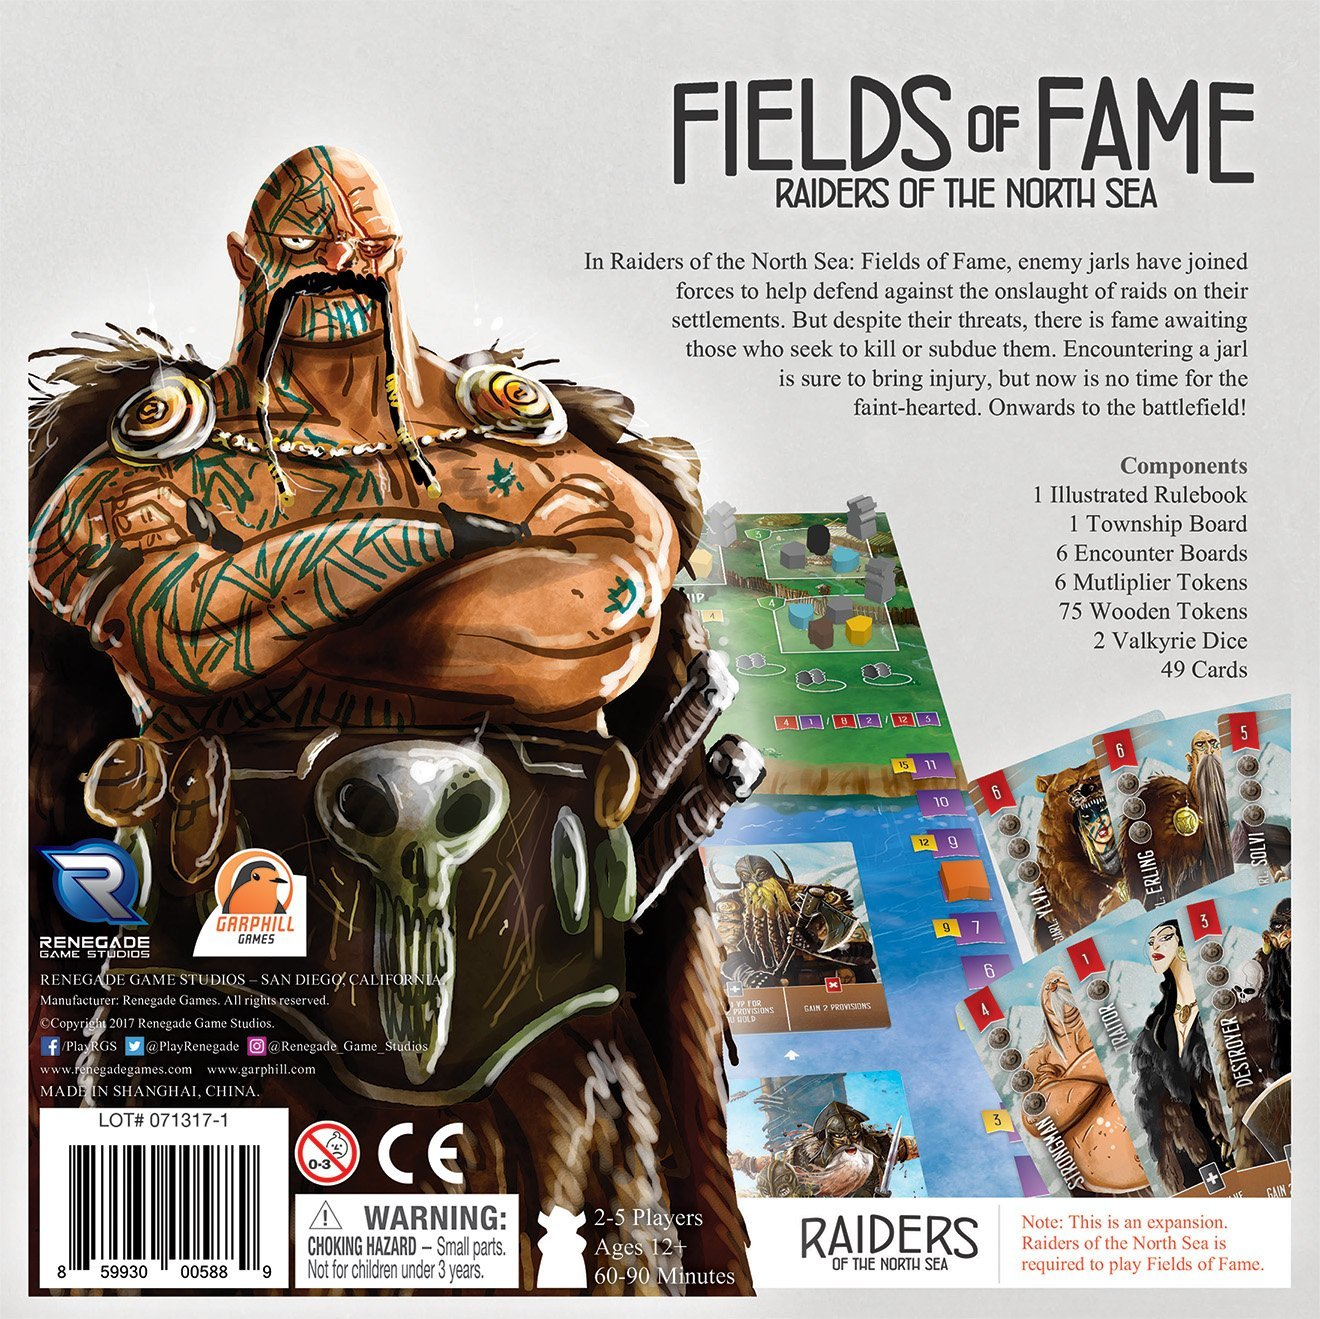 Raiders+of+the+North+Sea%3A+Fields+of+Fame+%5Btrans.boxback%5D